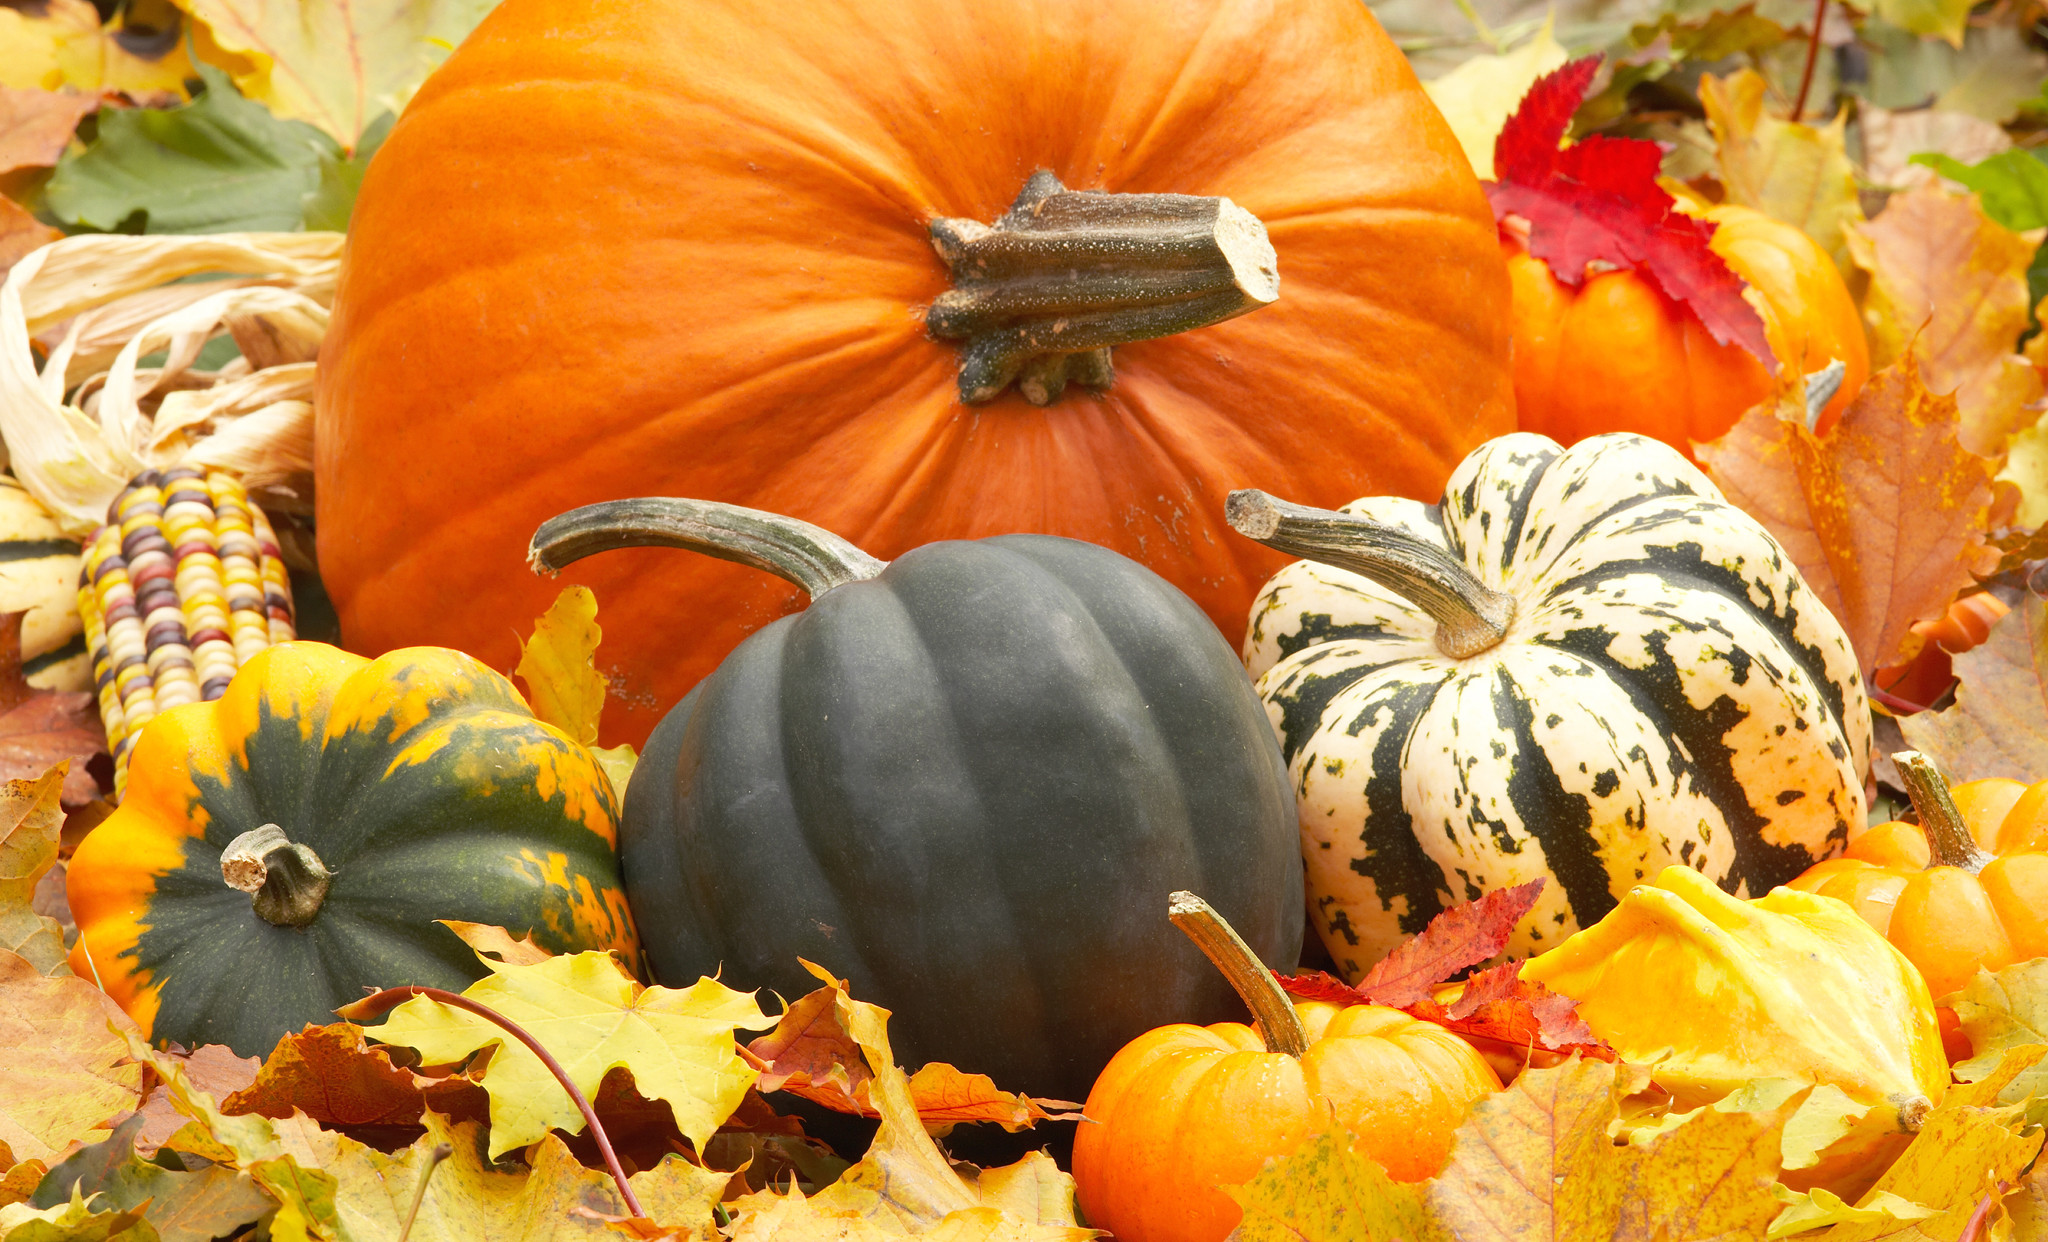 Fall Wallpaper Backgrounds With Pumpkins 55 images 2048x1242